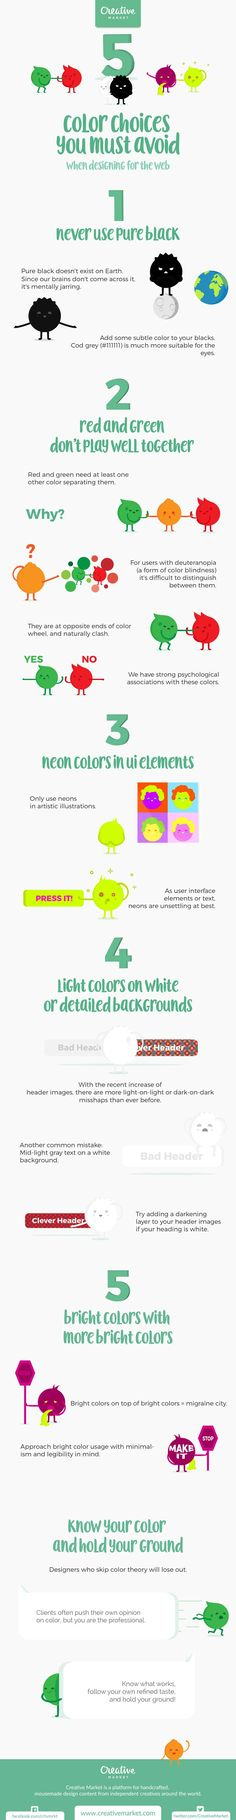 This week we've created a handy guide to help you select great color combinations for your next web design project.